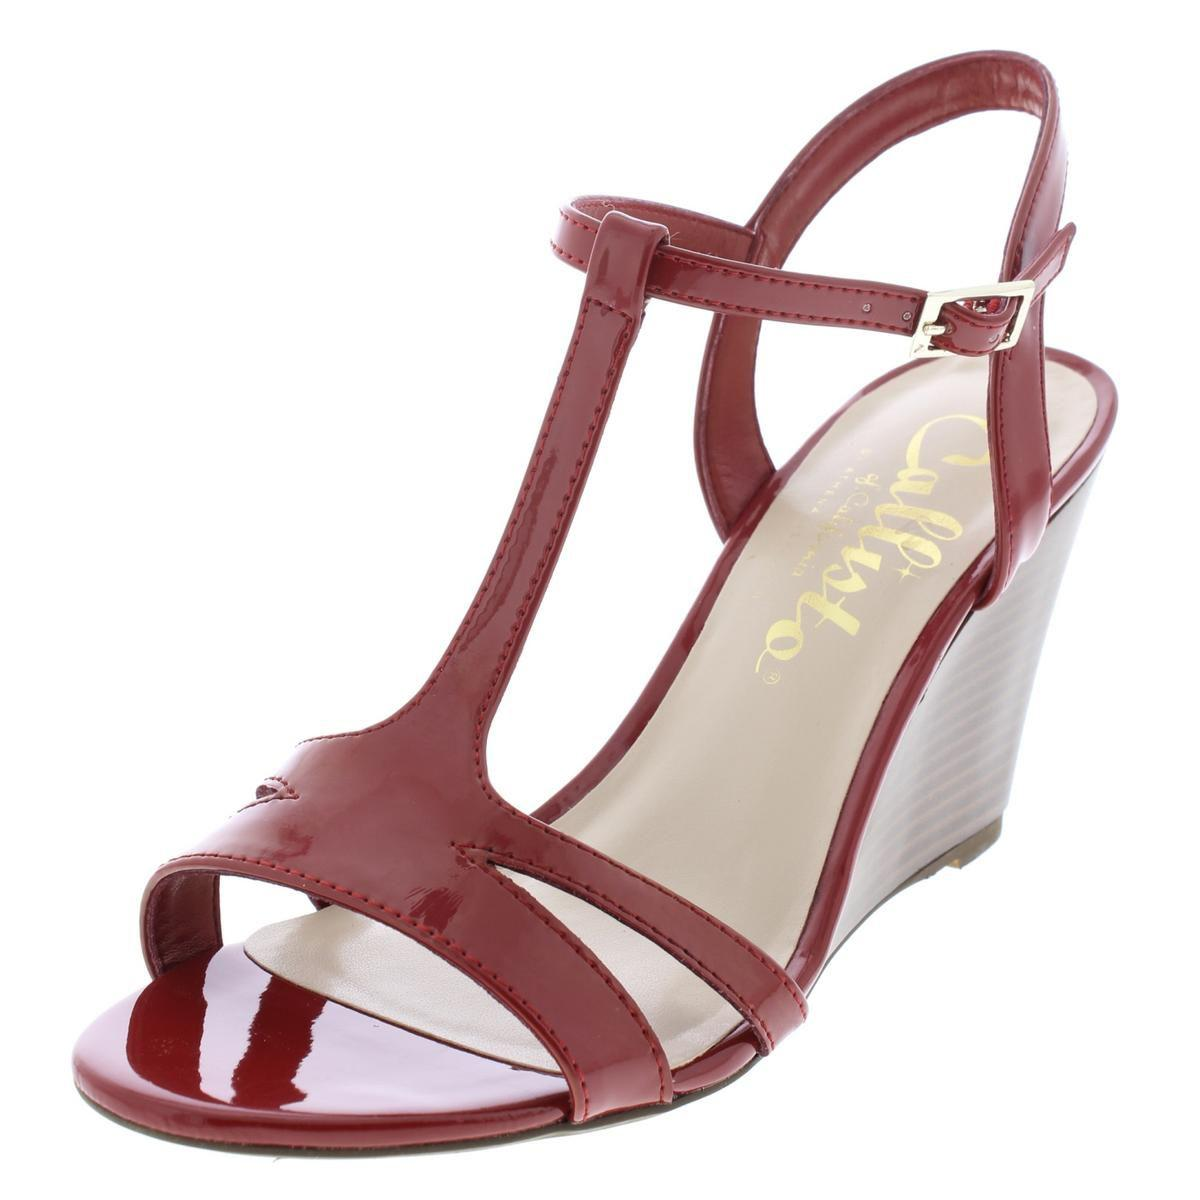 04181858b4c Lyst - Callisto Womens Upright Patent Wedge Sandals in Red